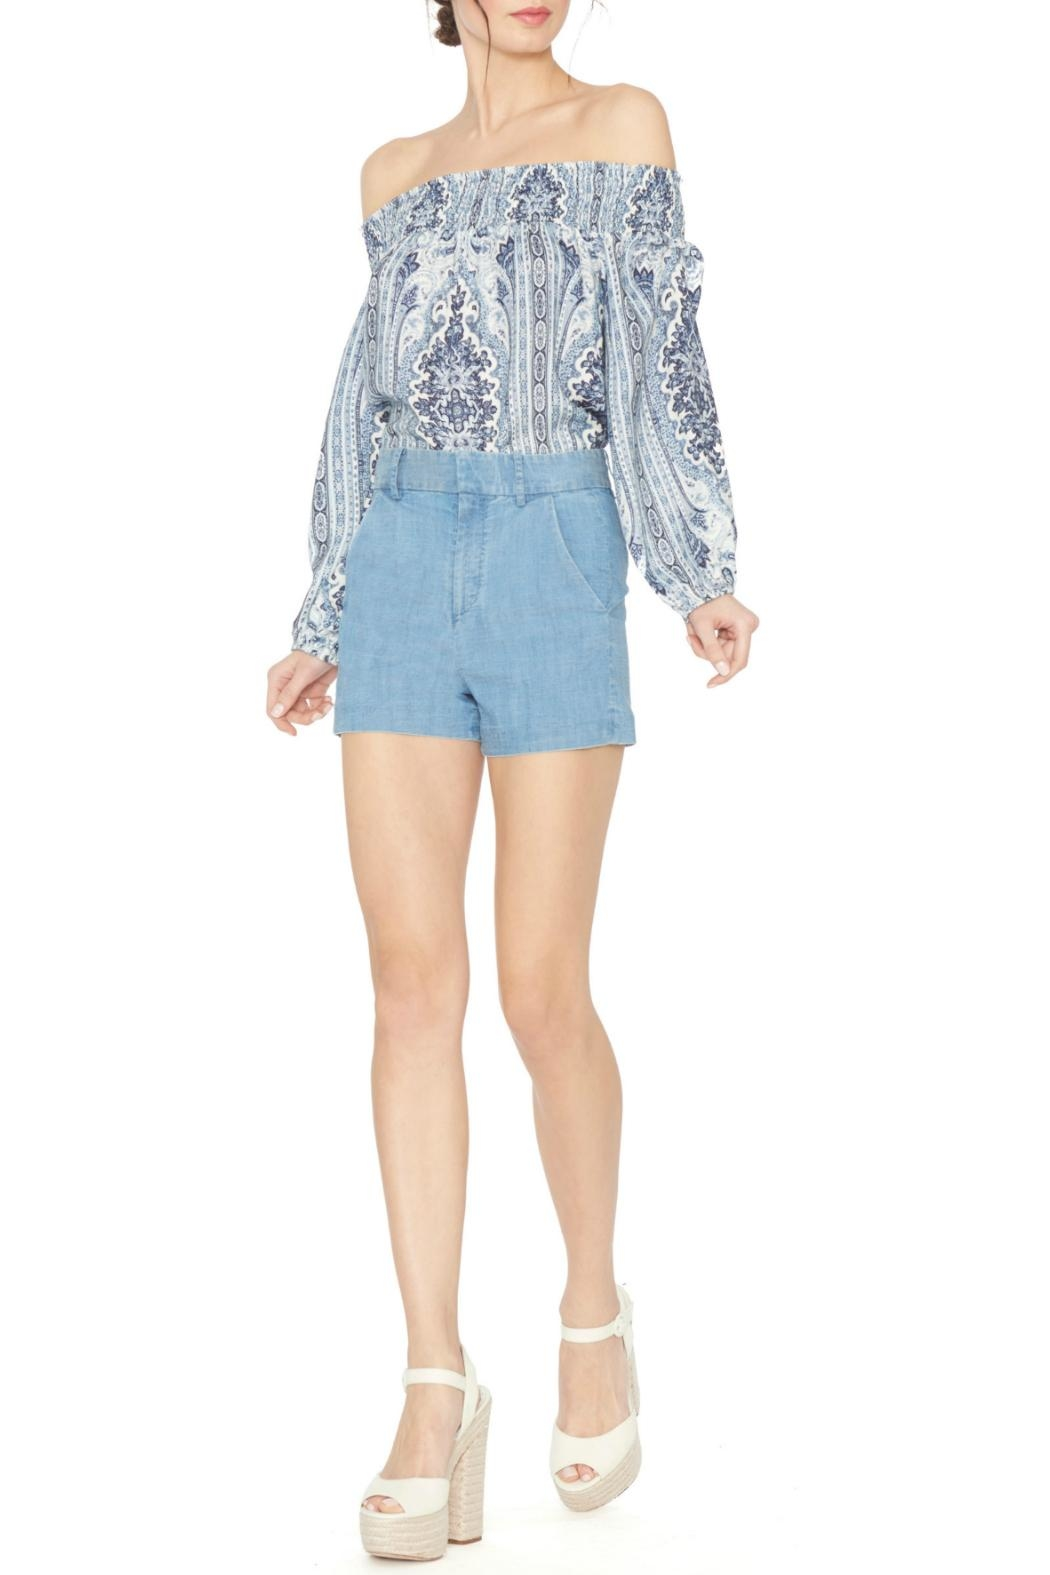 Alice + Olivia Blue Printed Boho Blouse - Main Image